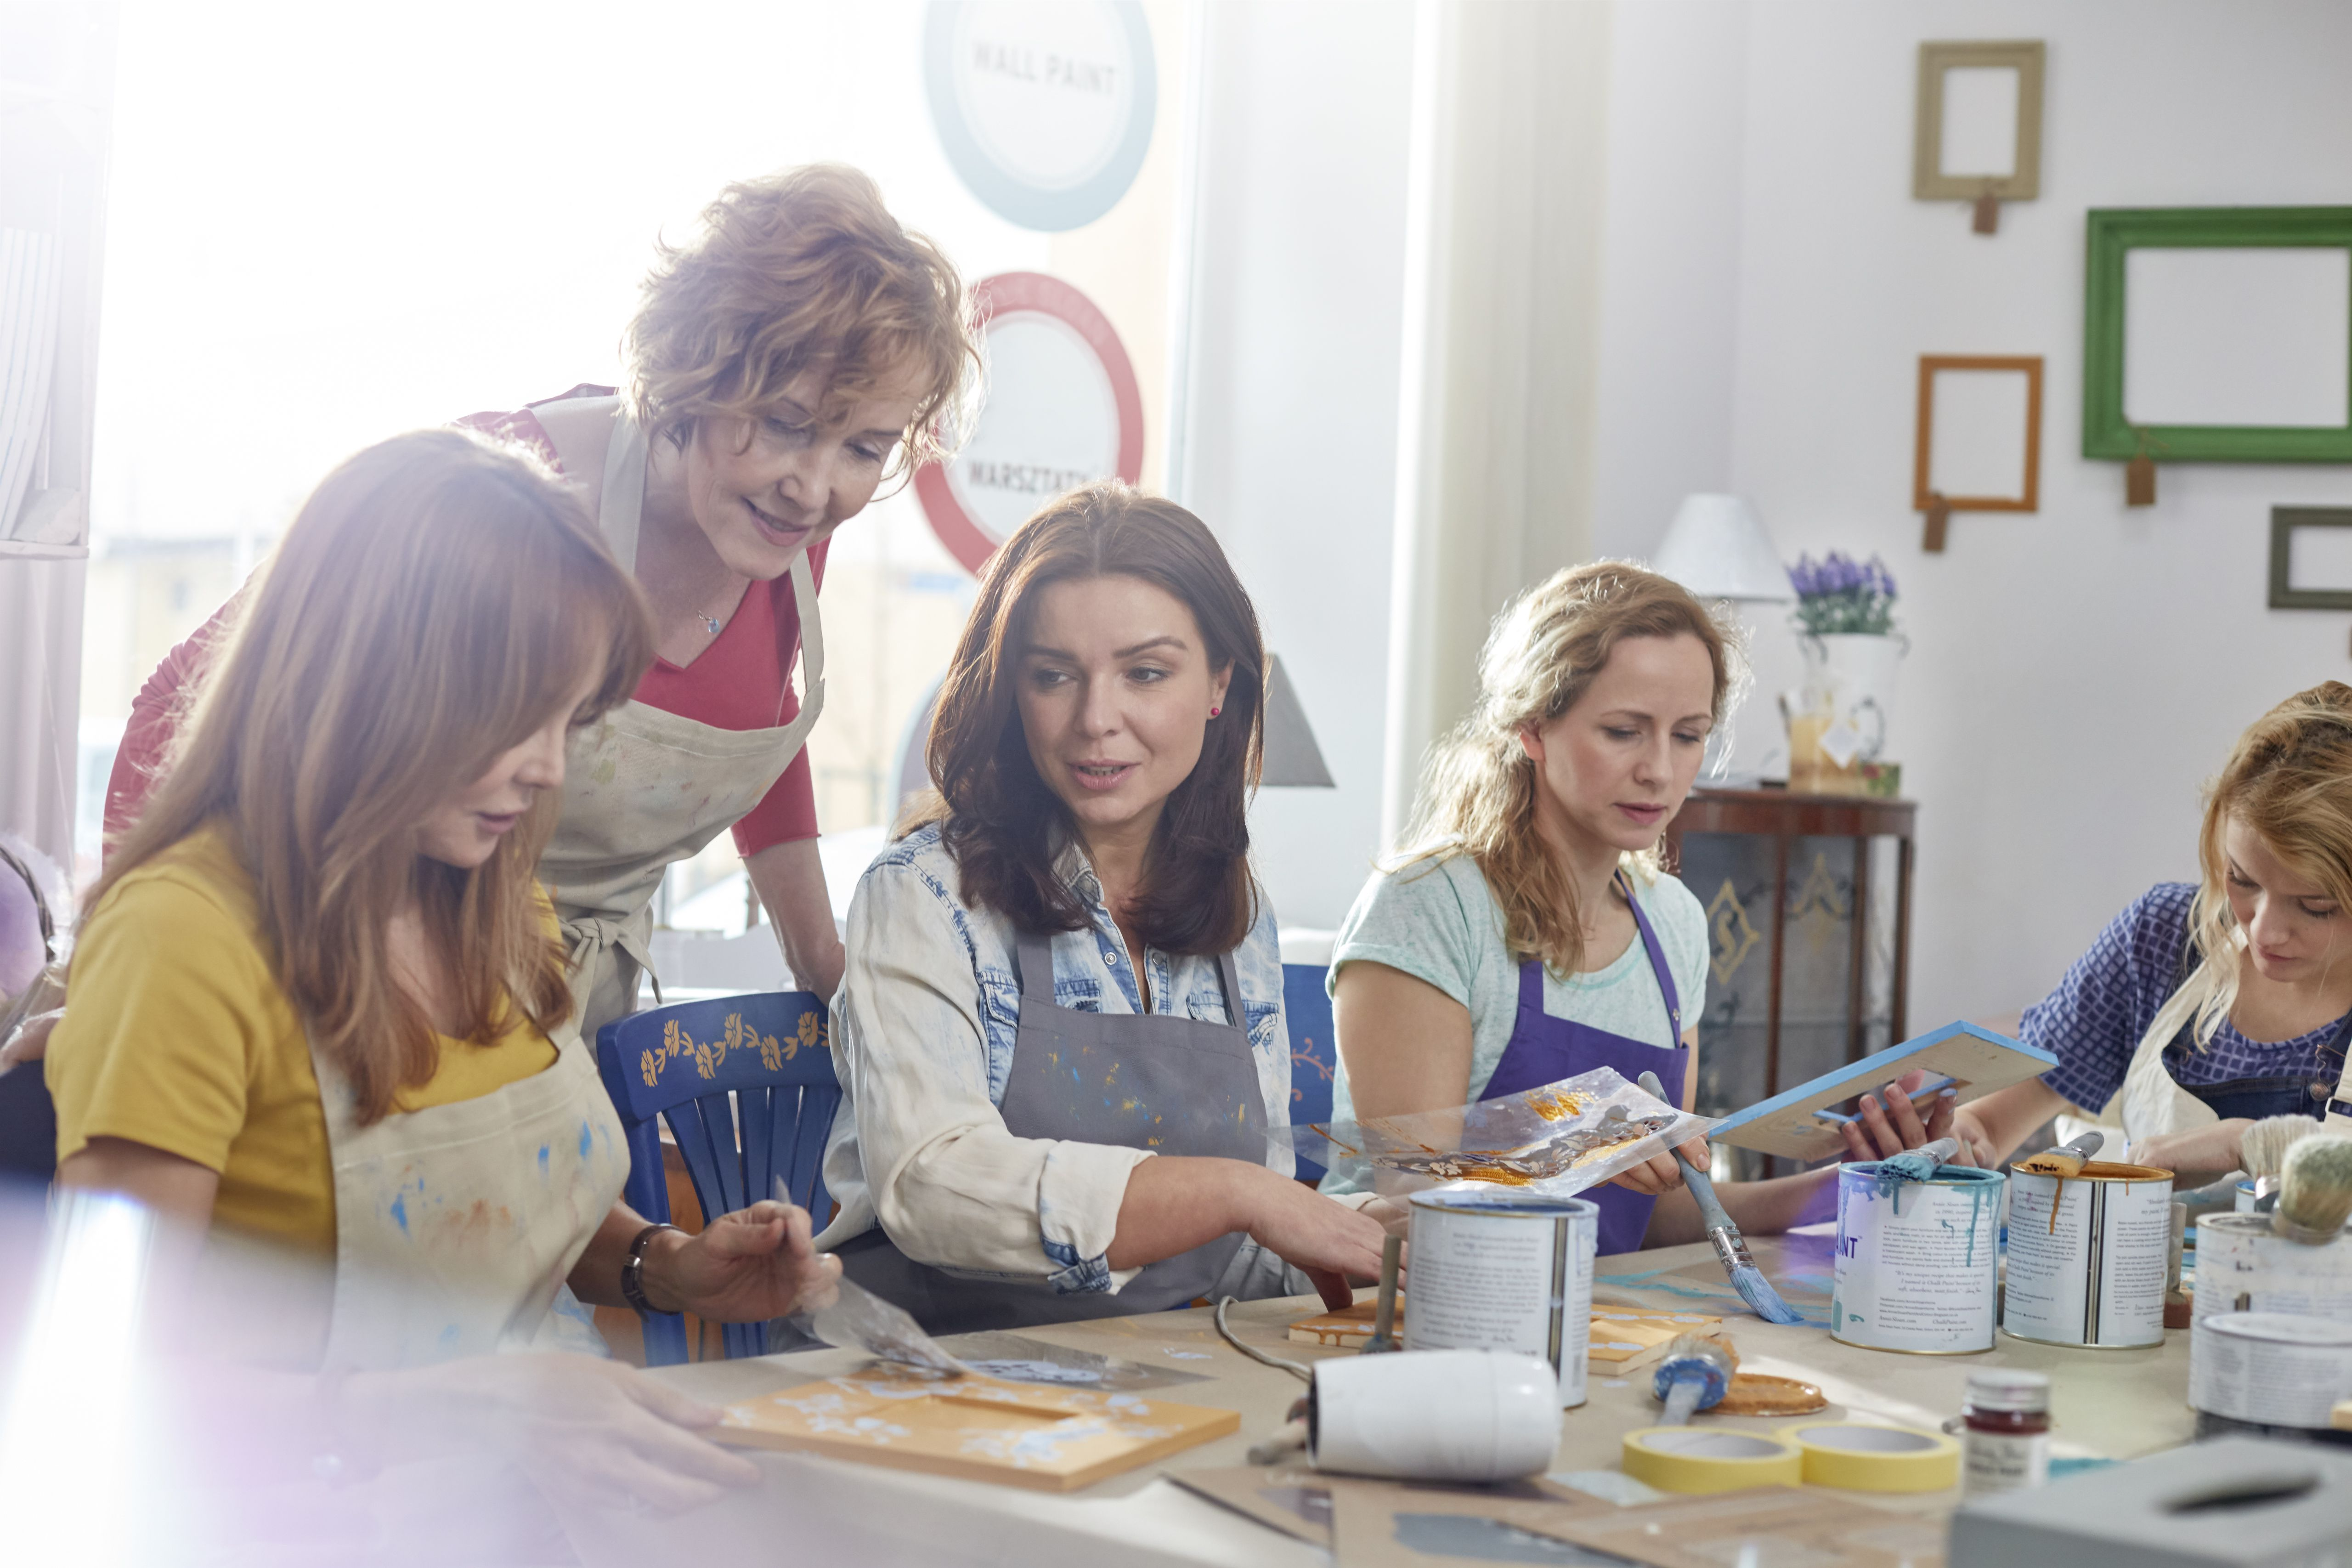 7 Best Craft Kits for Adults of 2019